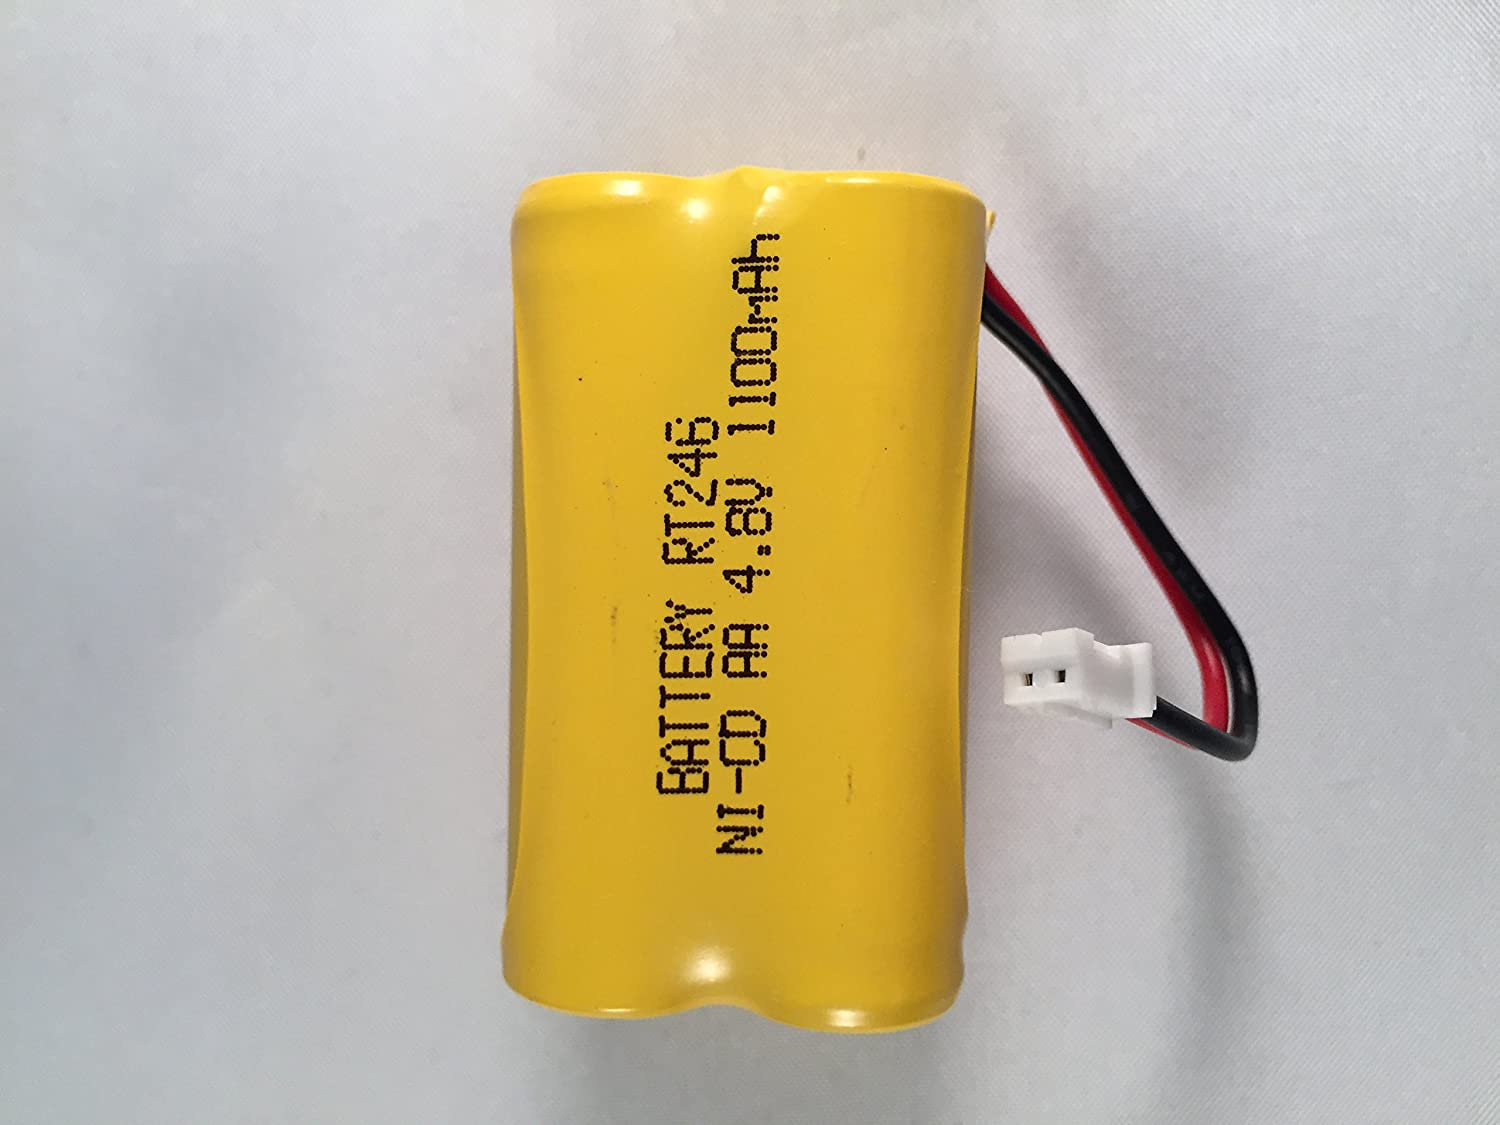 Summer Baby Video Monitors Battery Extended 1100mAh NiCD Battery by RTL Batteries summerinfant